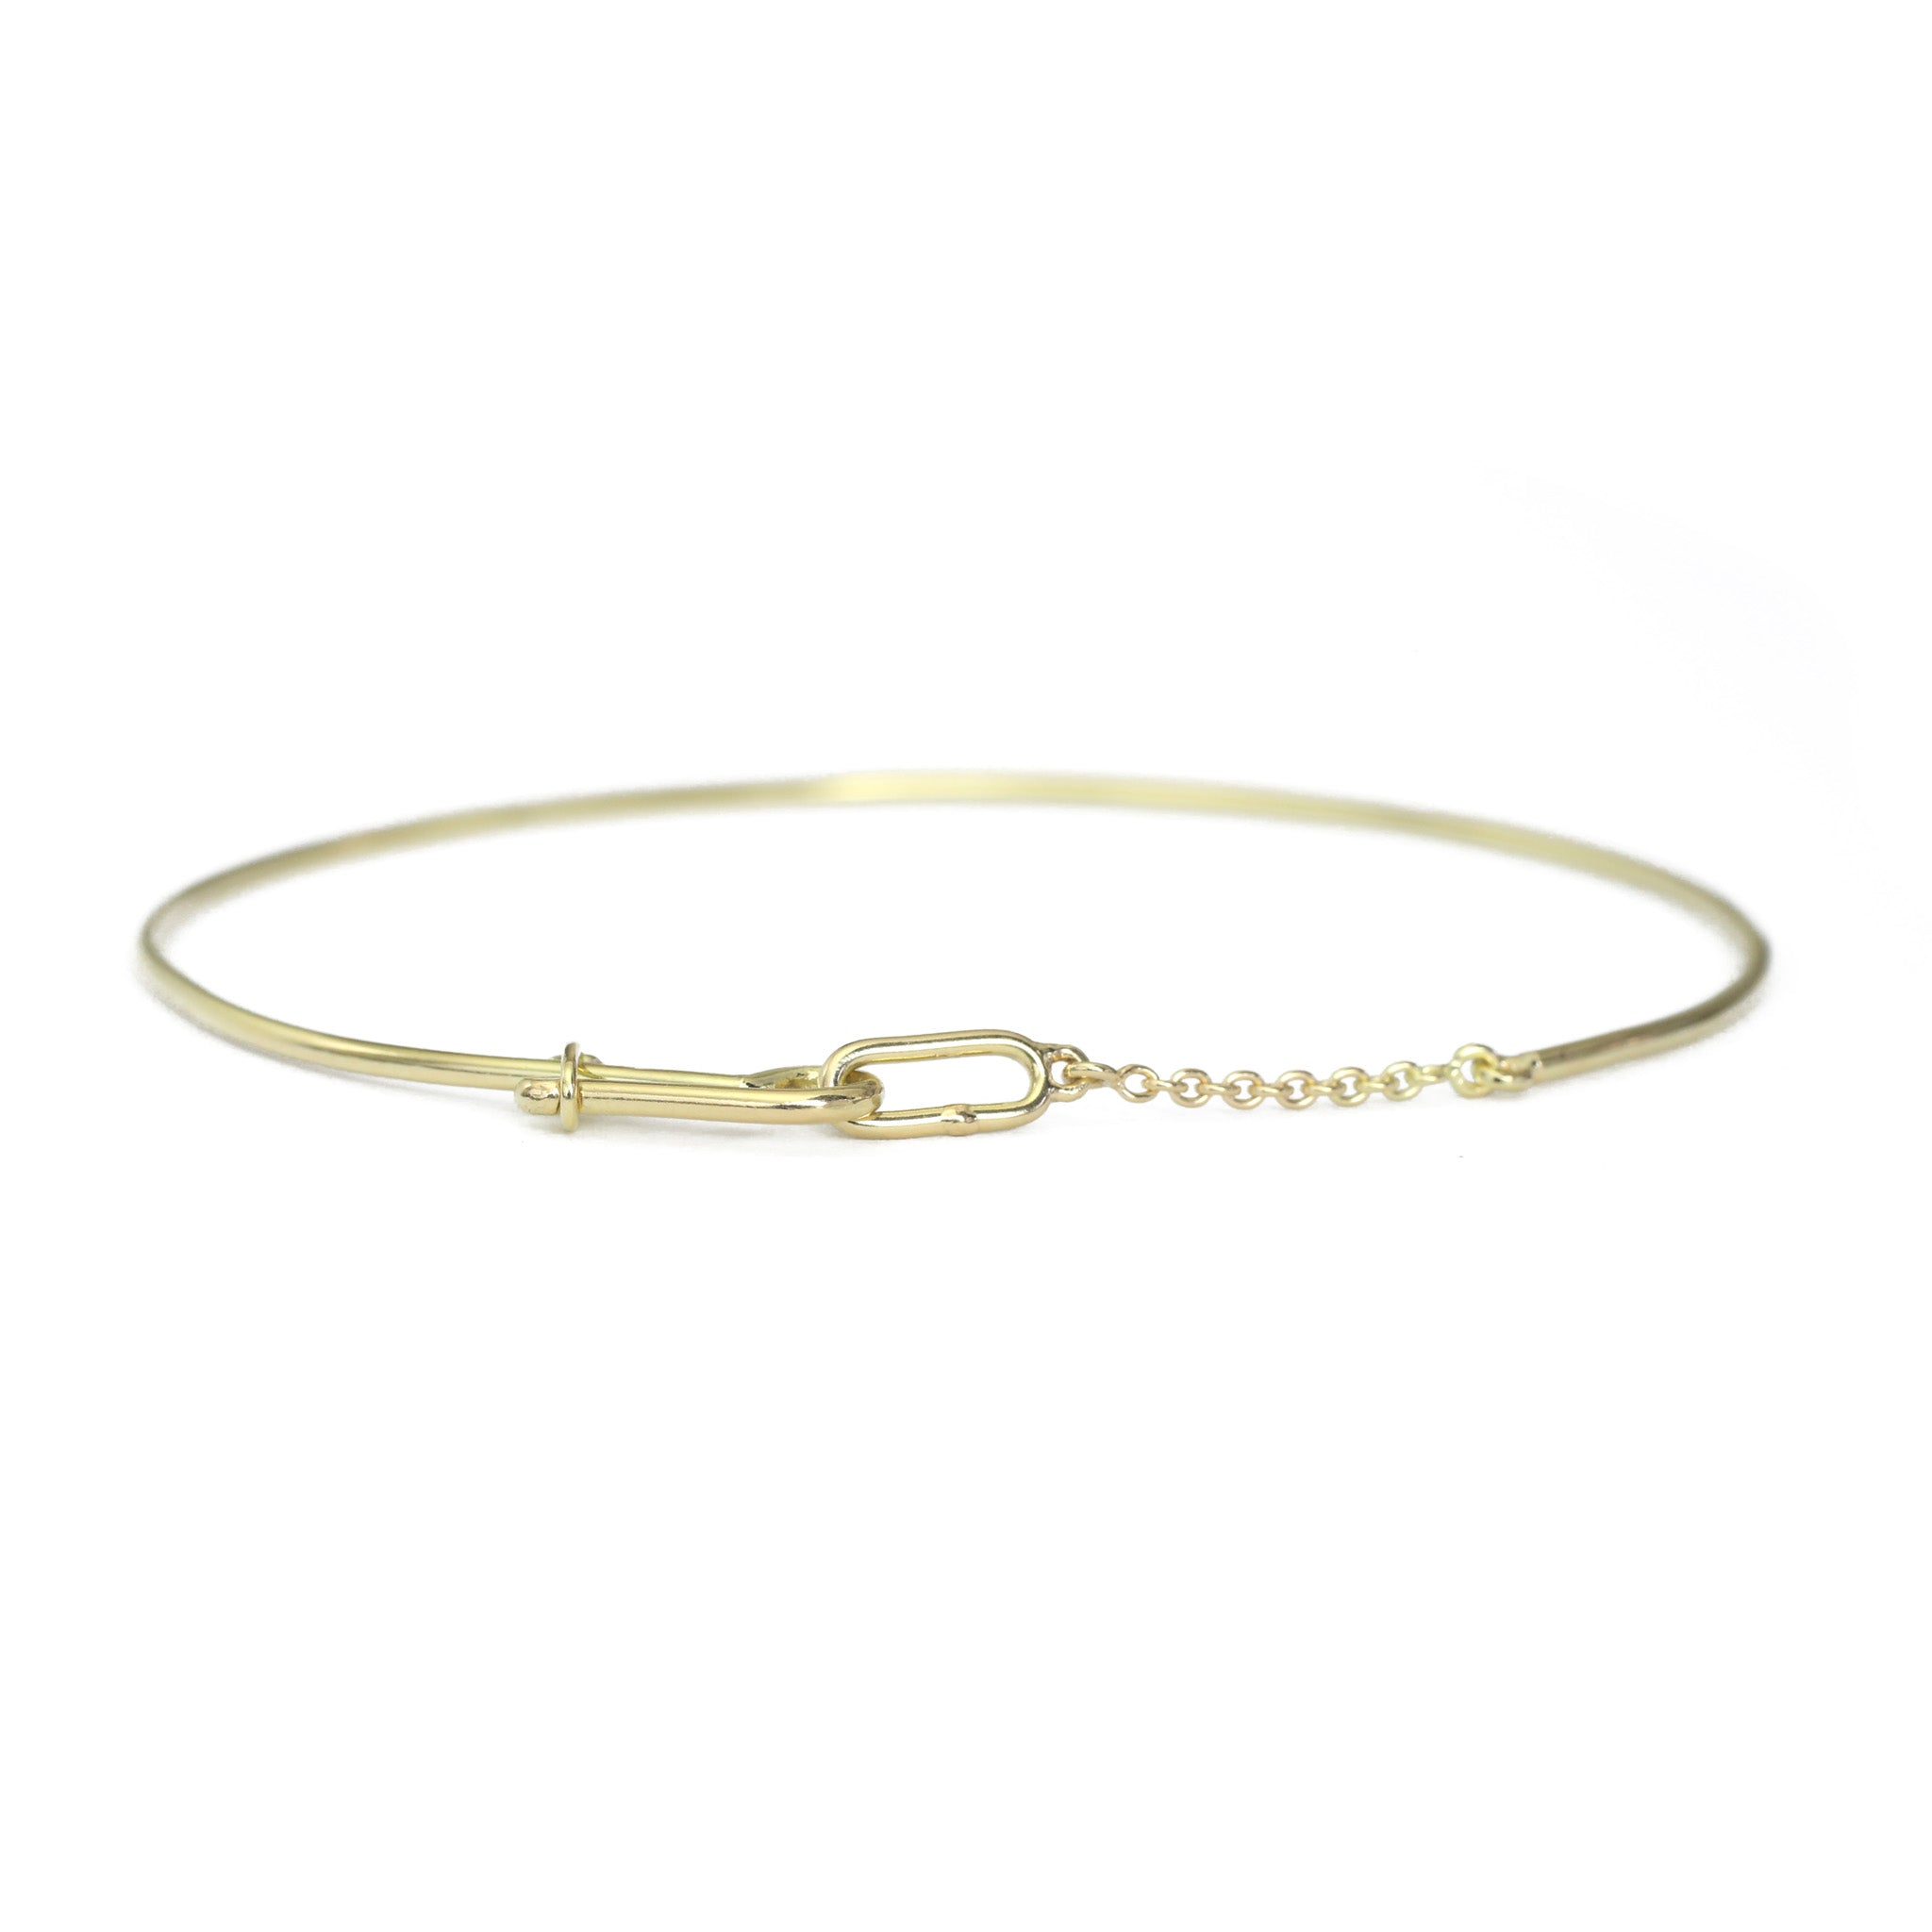 Chained Bangle - Lightweight